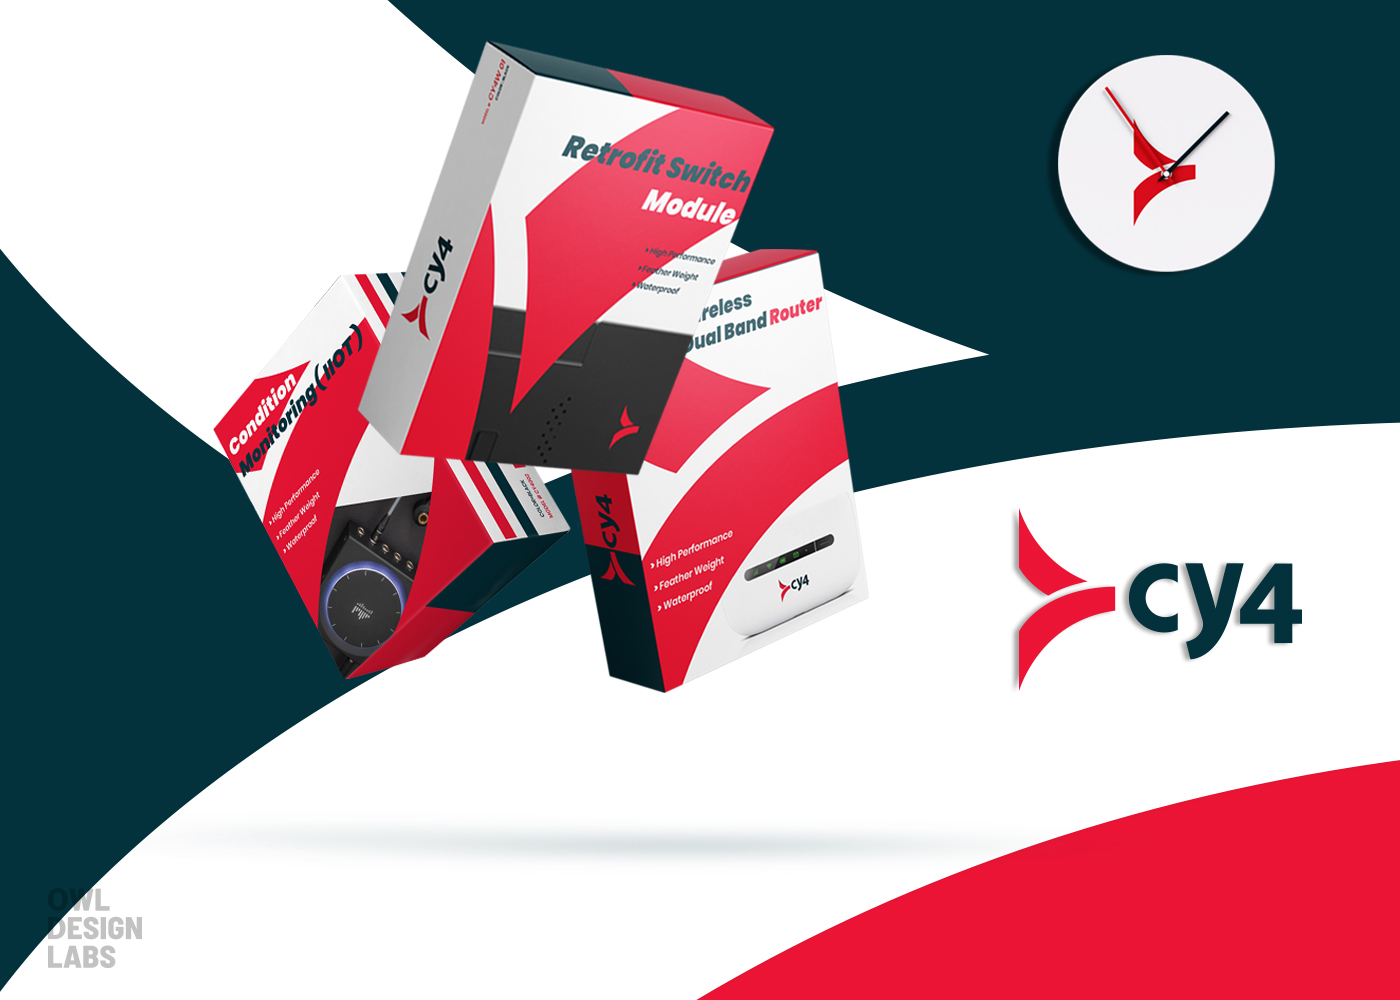 Owl Design labs Creates New Brand Identity System for CY4